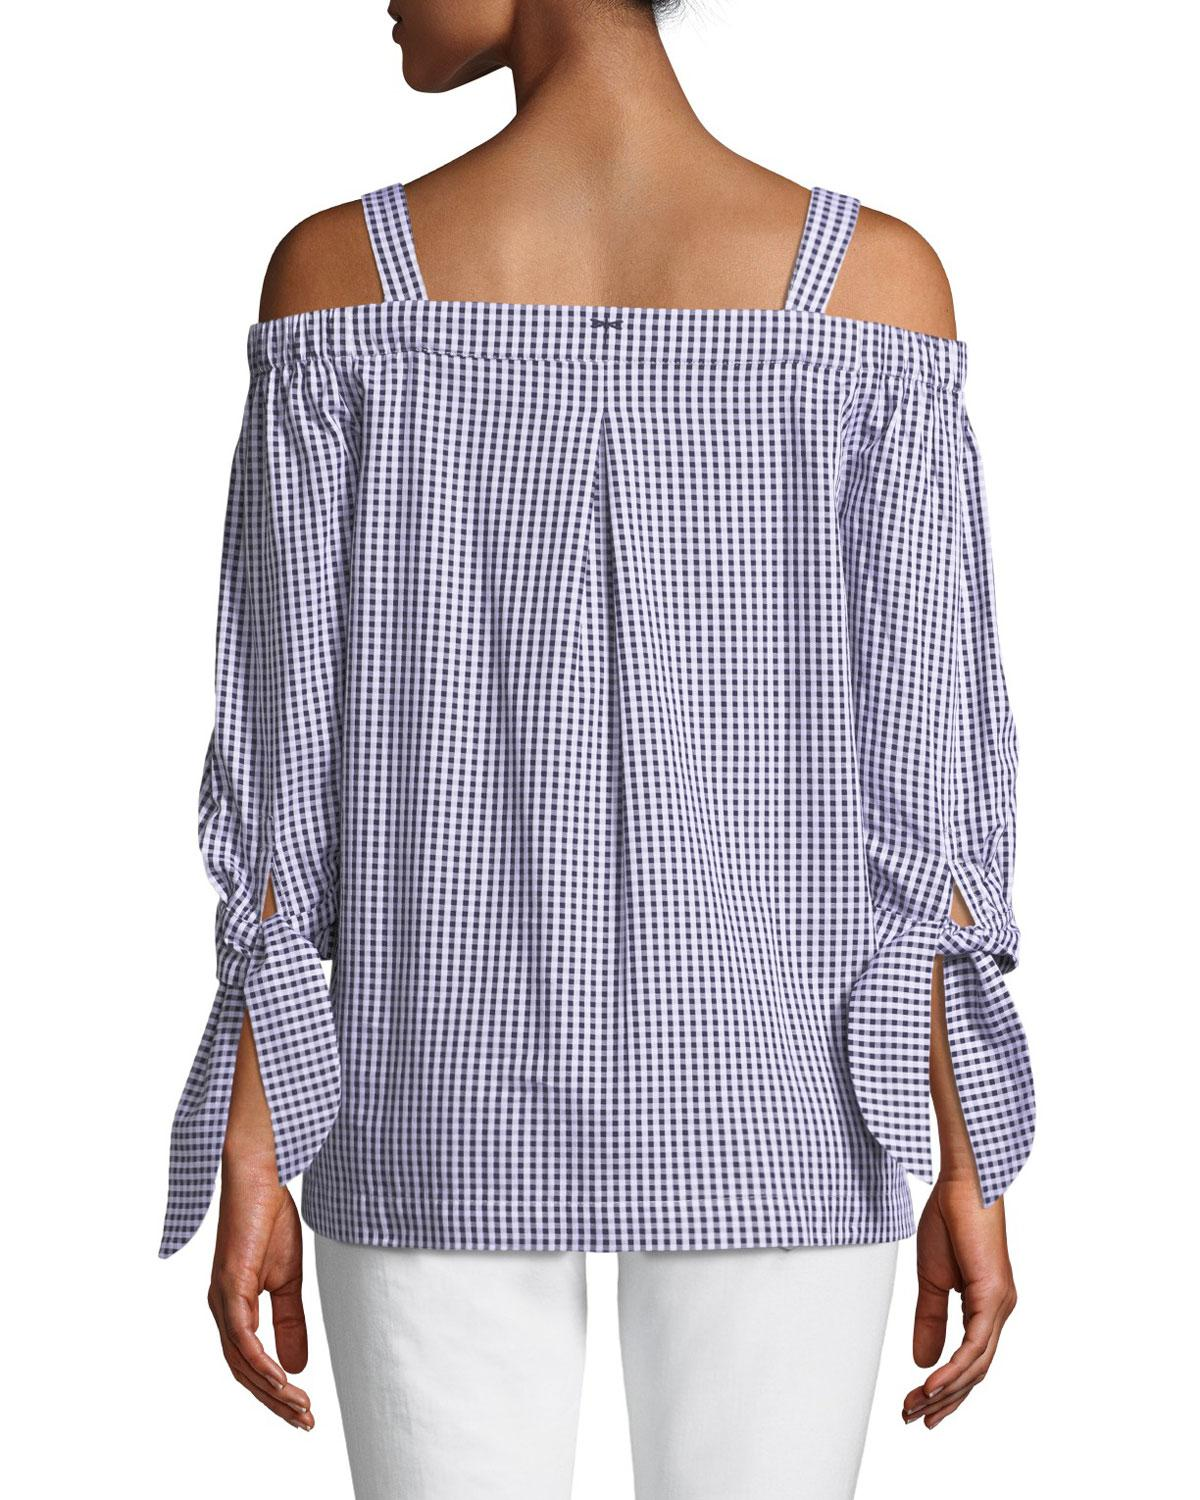 Deals Cali Gingham Cold-Shoulder Tie-Sleeve Blouse Neiman Marcus Clearance Fast Delivery Clearance Lowest Price Fashion Style Clearance Countdown Package BLiifr5251